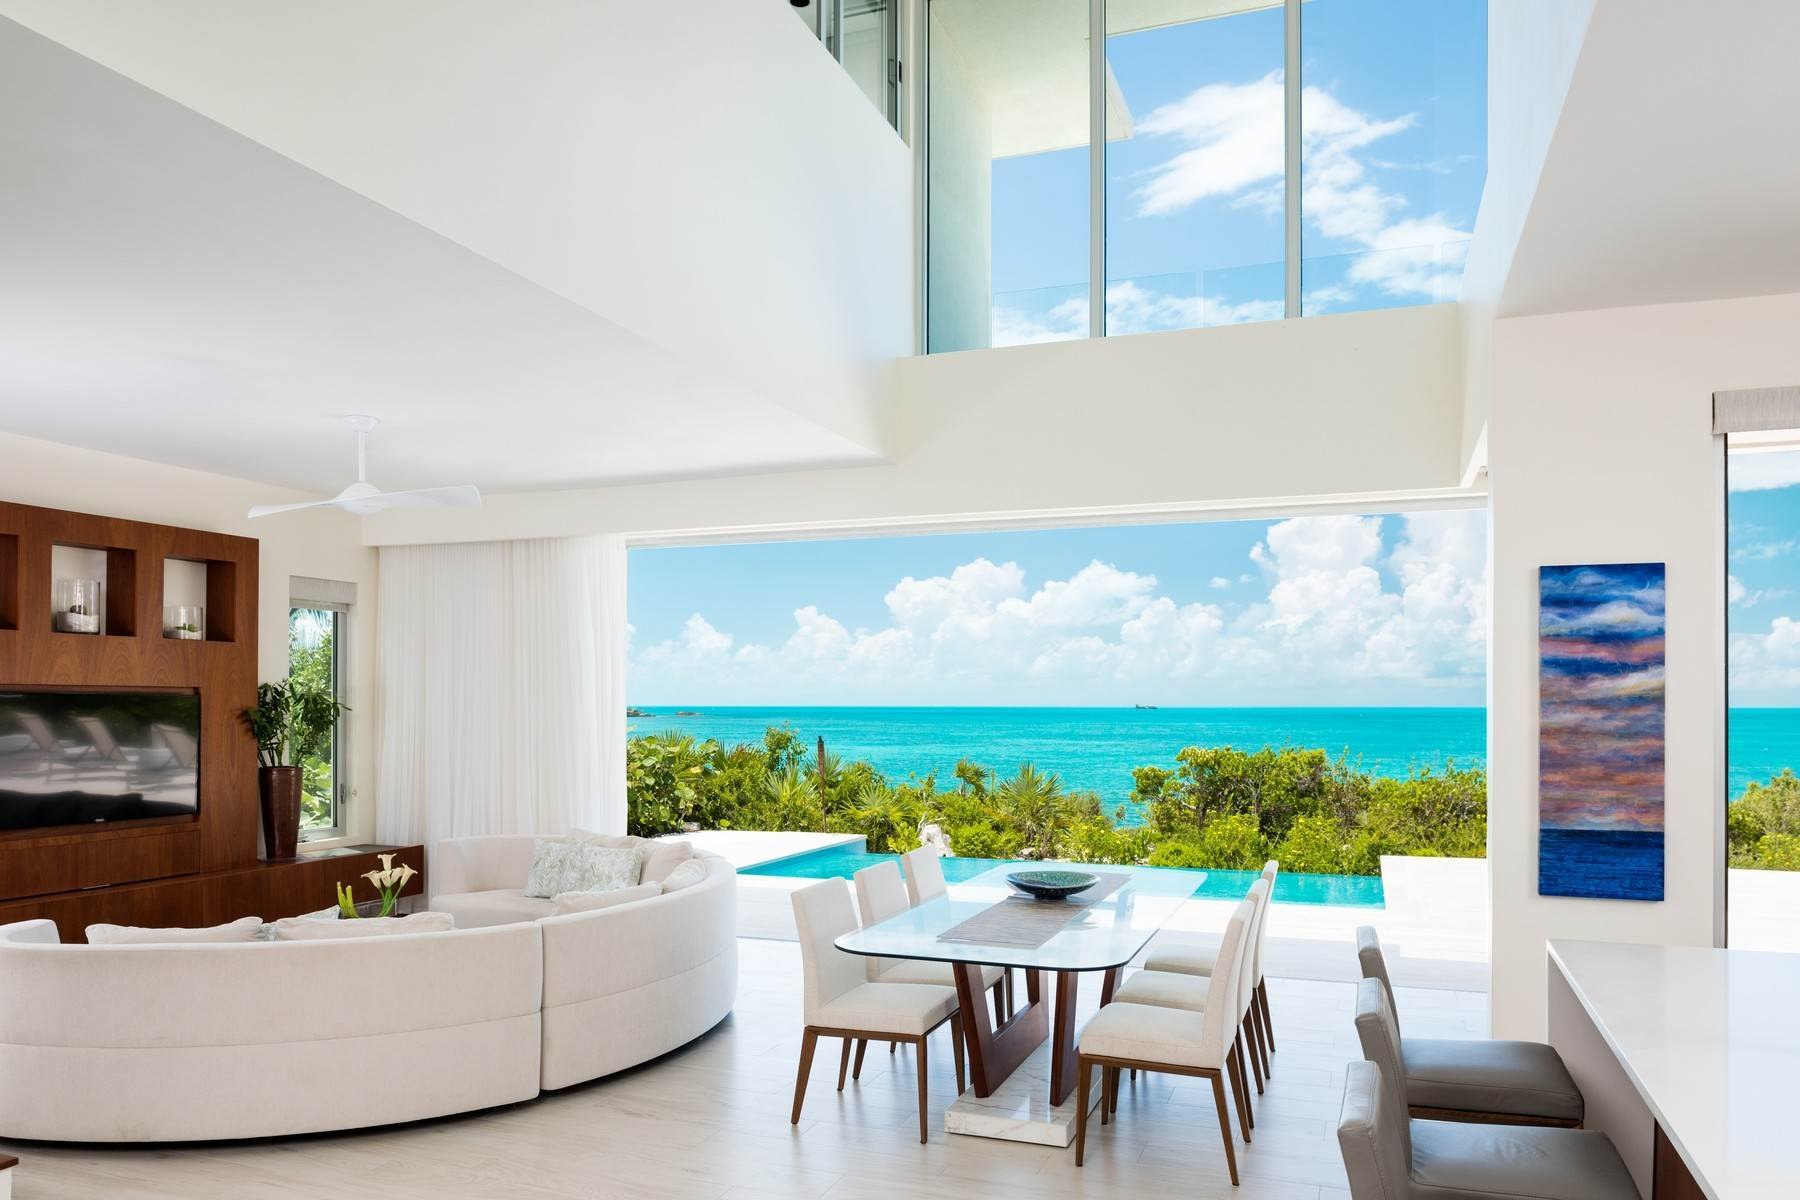 Single Family Homes for Sale at SOL Y LUNA Sapodilla Bay, Providenciales Turks And Caicos Islands